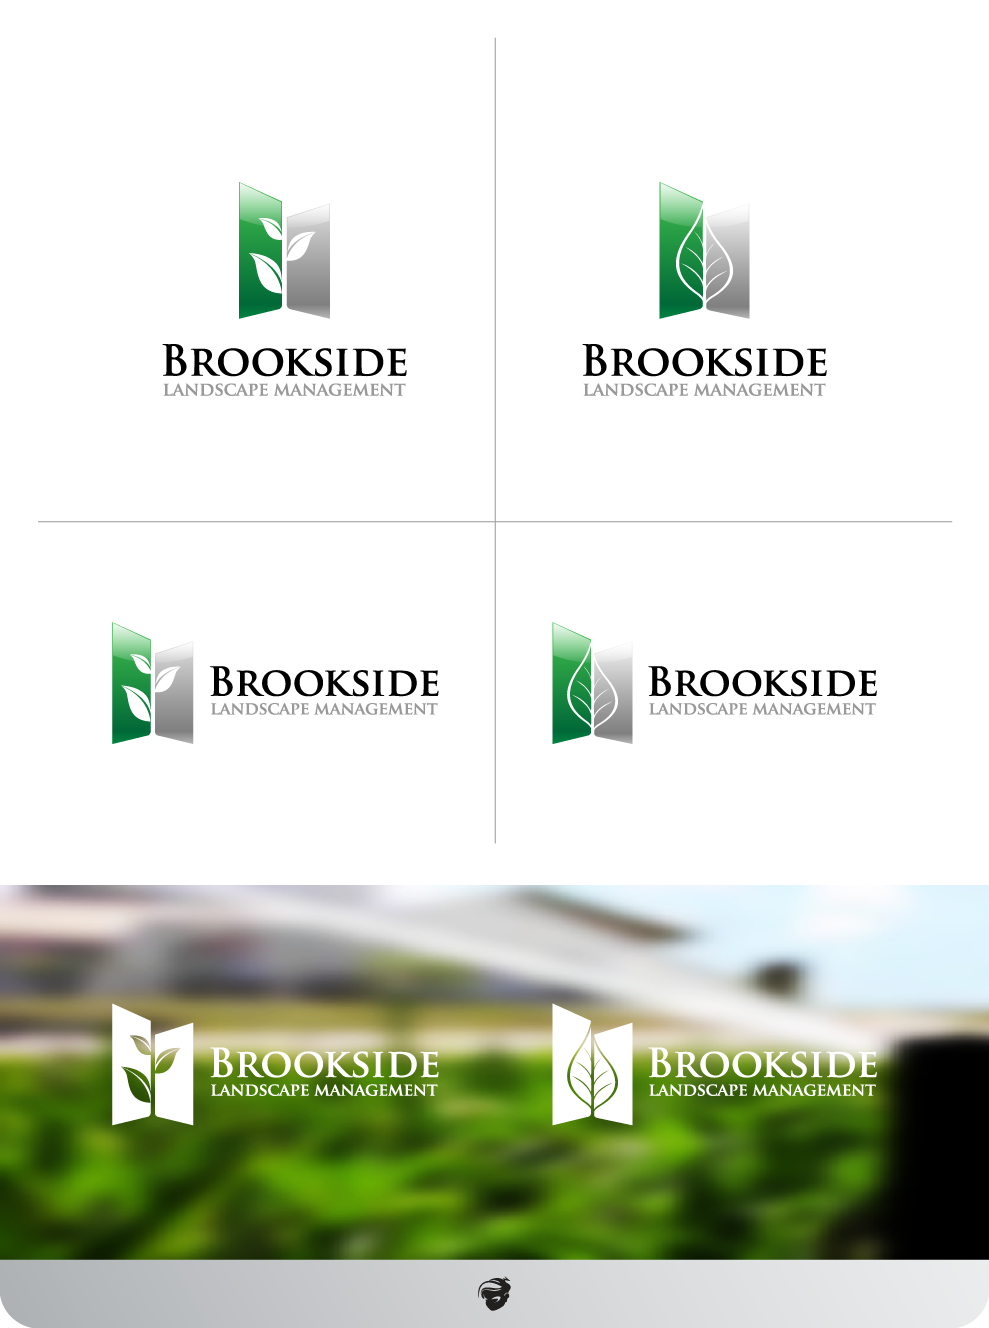 Logo Design by zesthar - Entry No. 181 in the Logo Design Contest New Logo Design for Brookside Landscape Management.